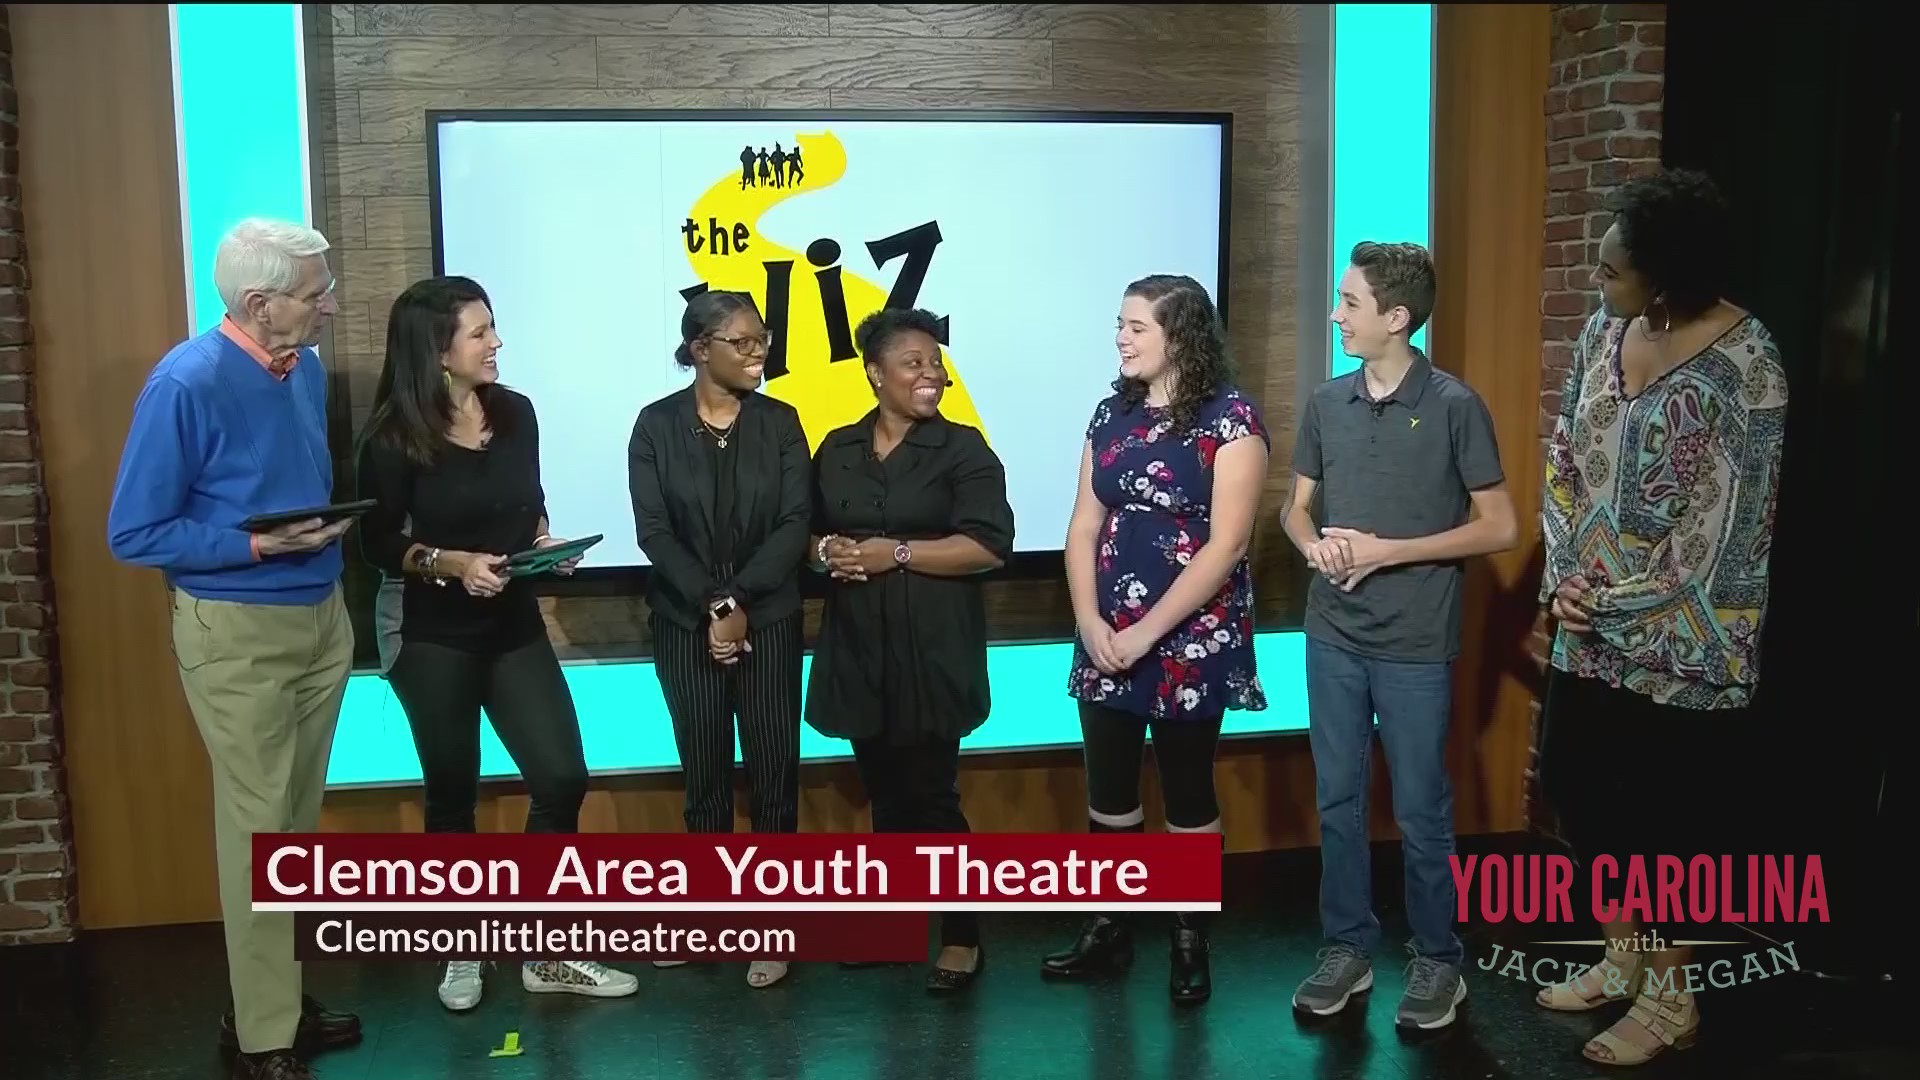 Make Plans To See The Wiz Jr.